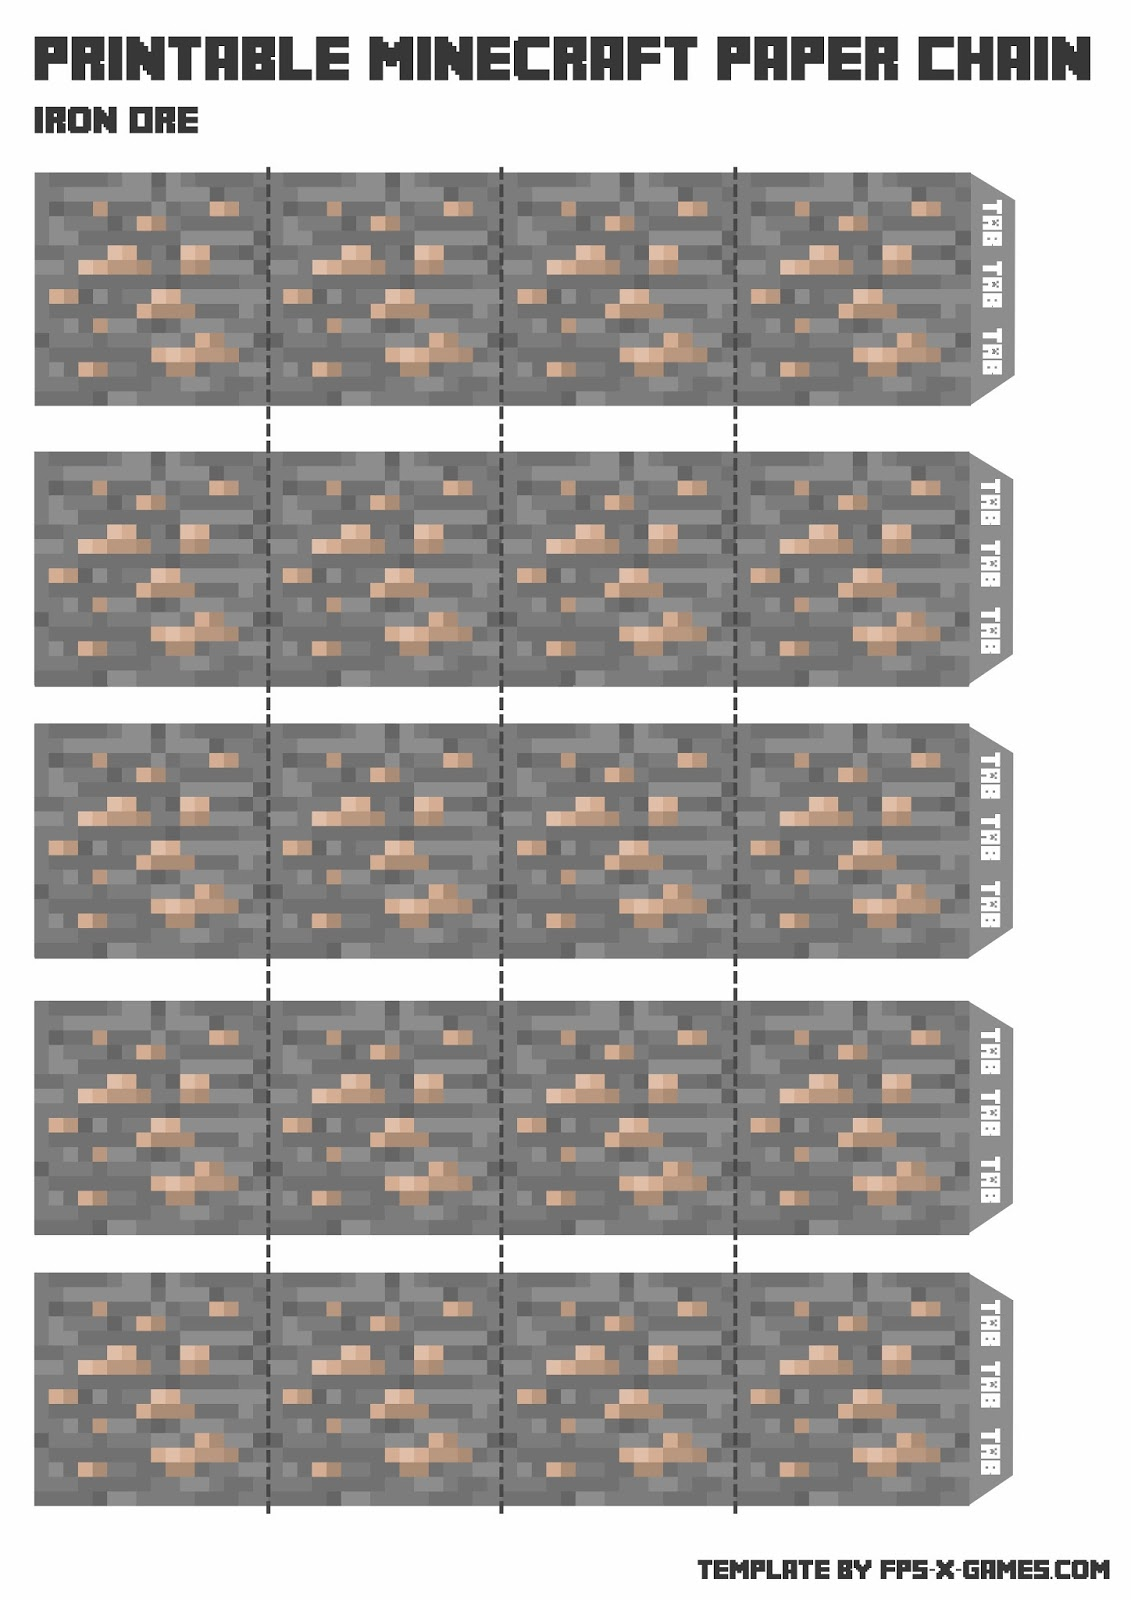 minecraft paper chain template iron ore